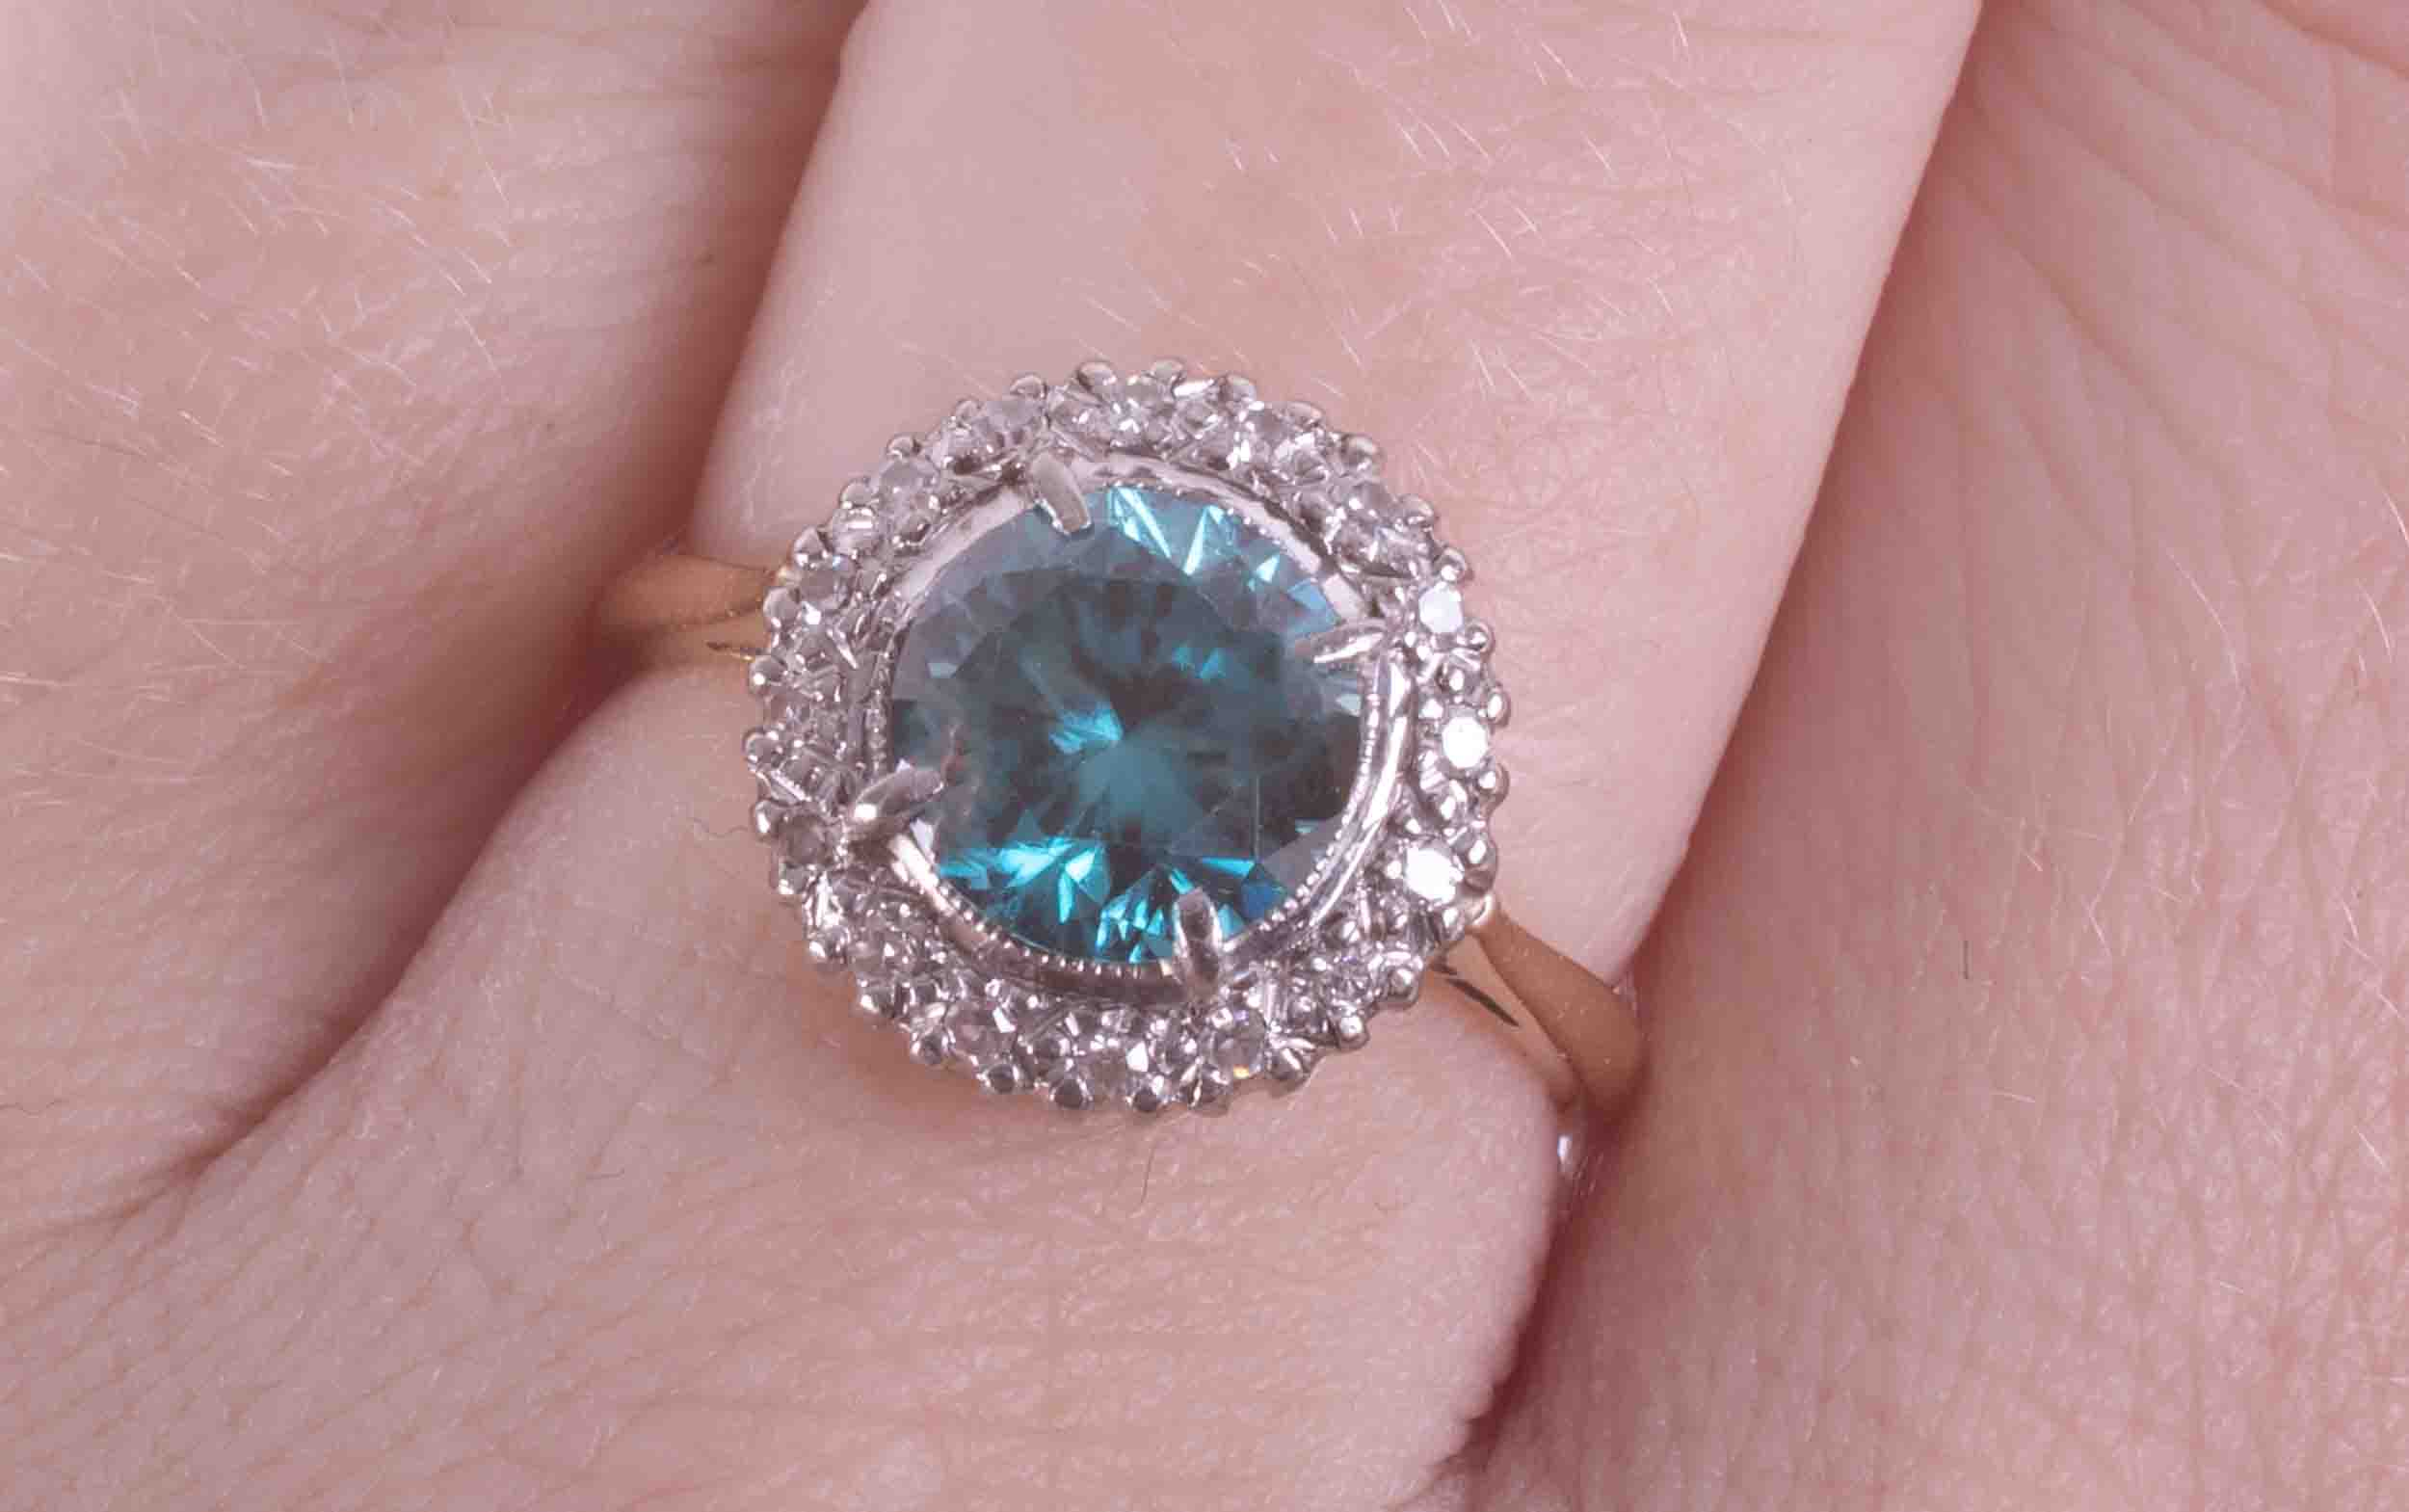 An 18ct yellow gold & platinum cluster ring set with approx. 1.67 carats of blue zircon surrounded - Image 2 of 2